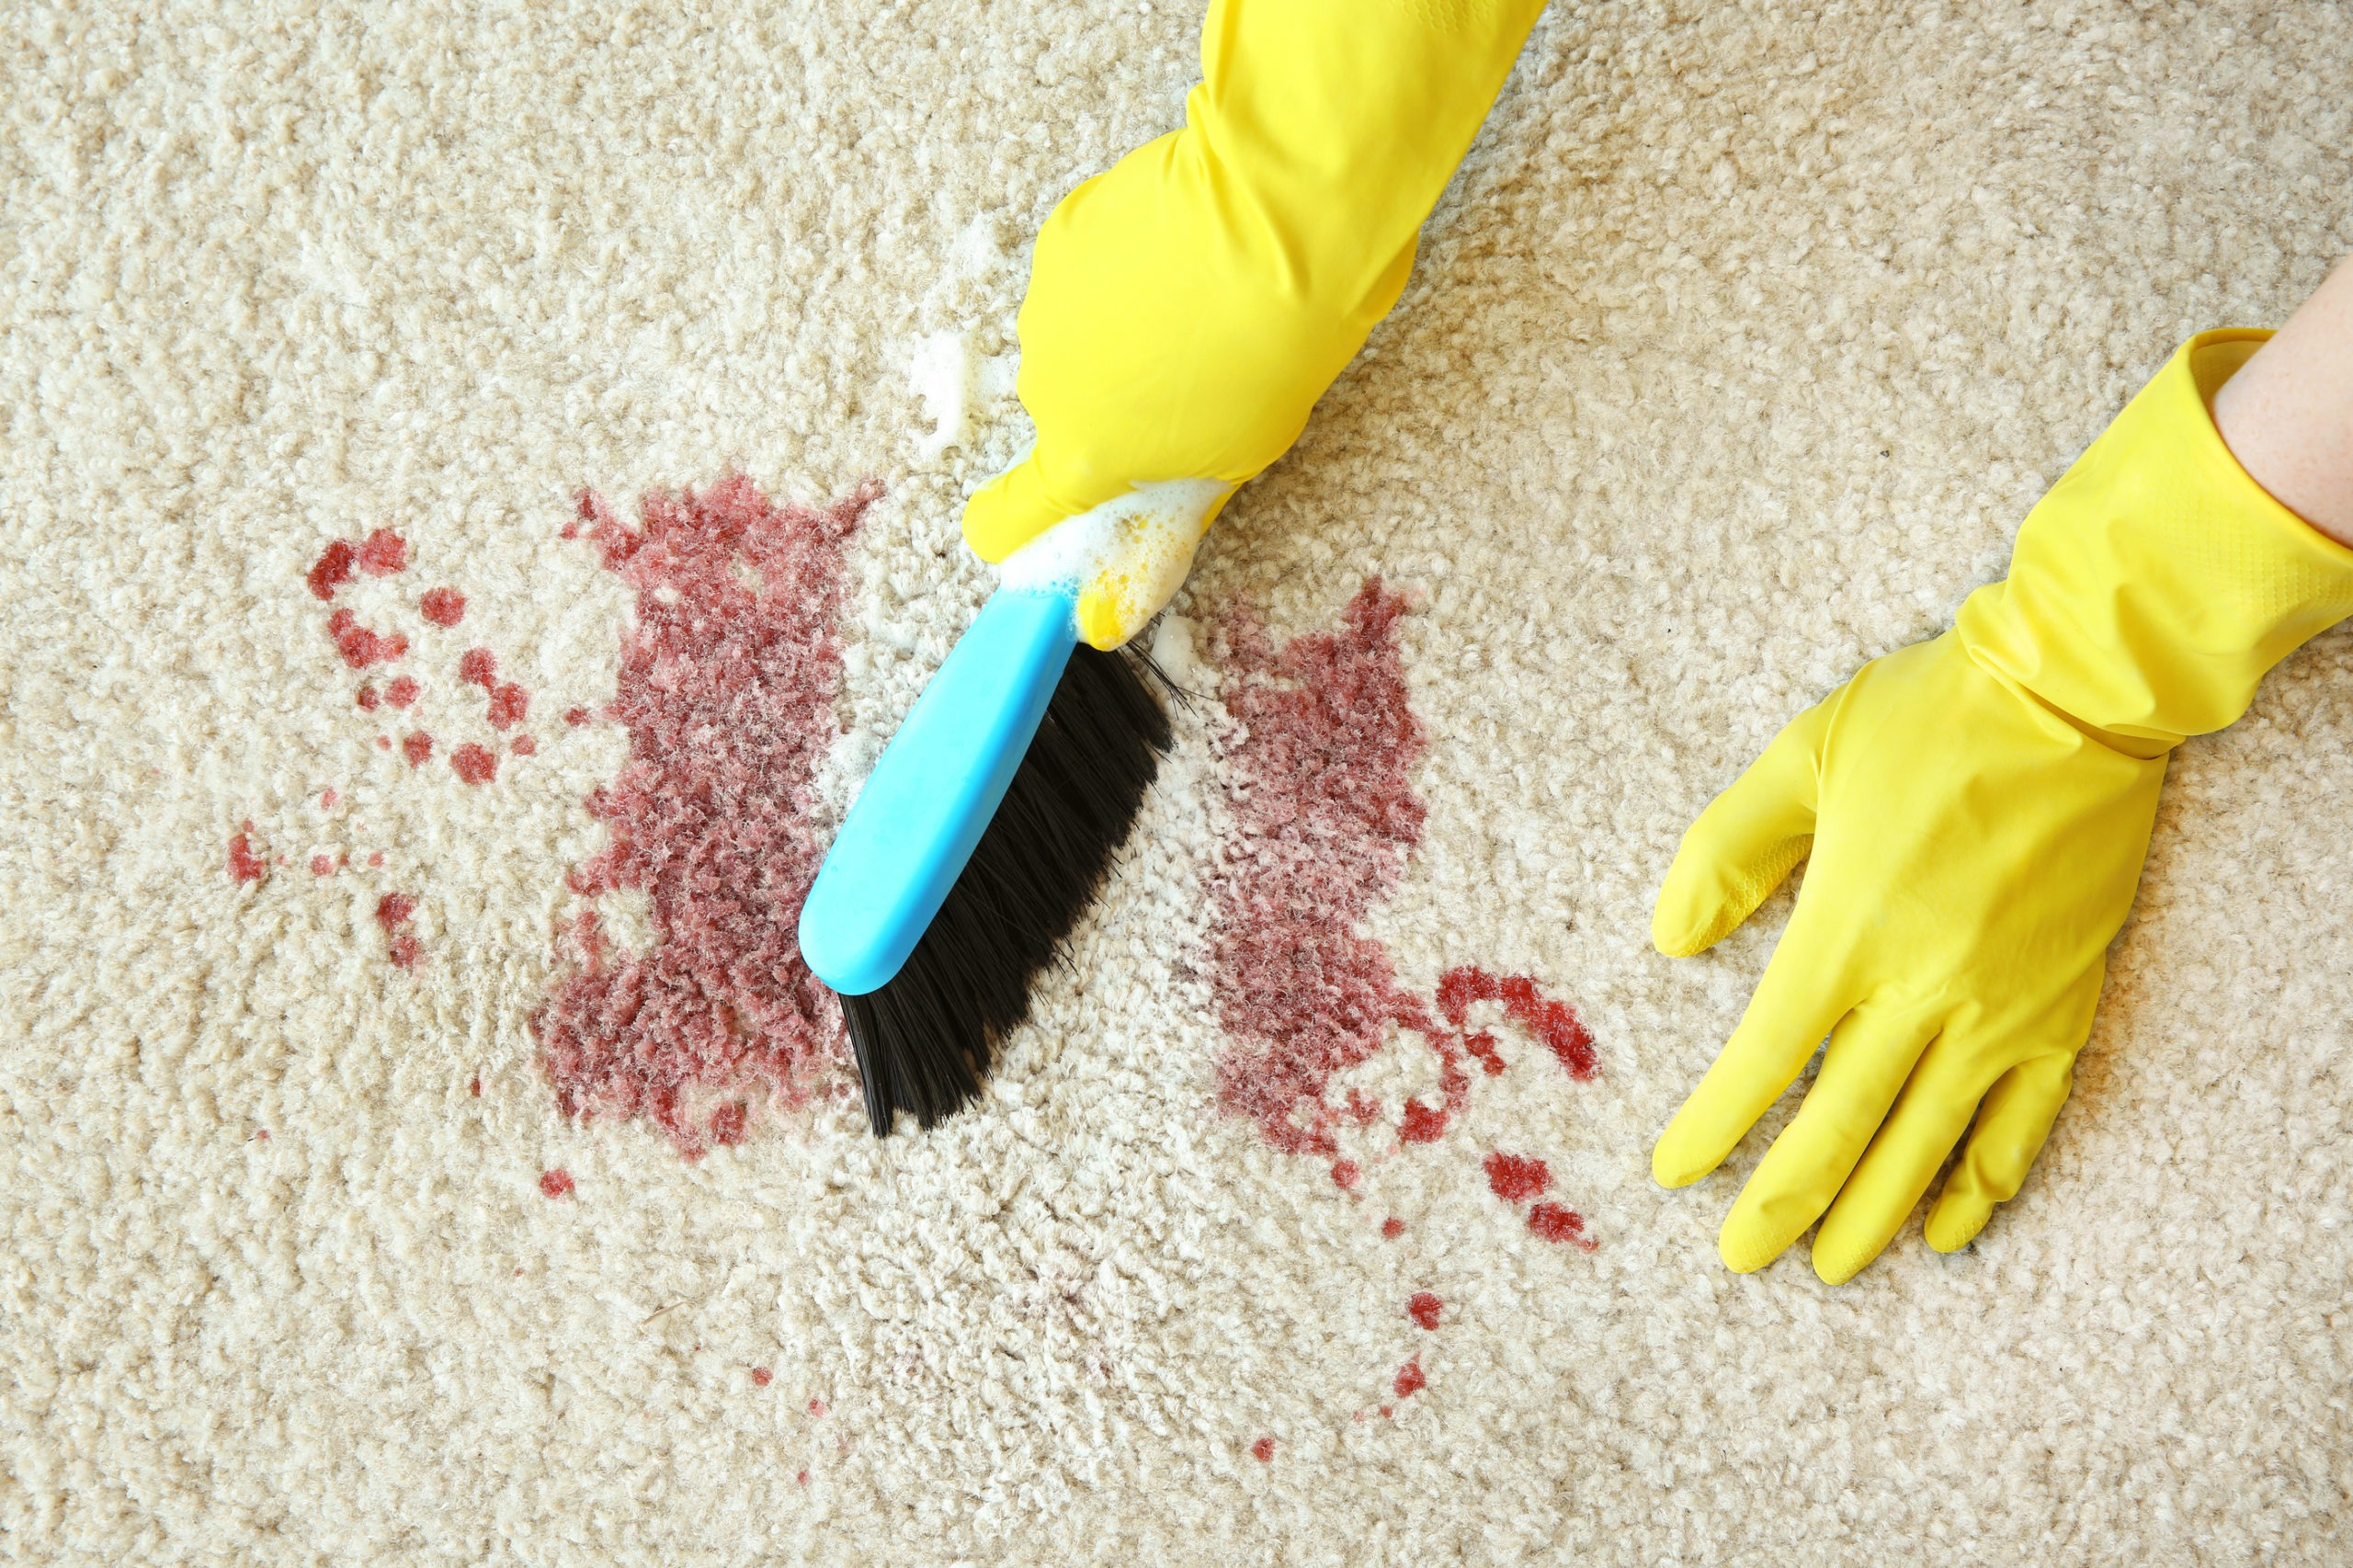 carpet blood stains, get blood out of carpet, bloody spot